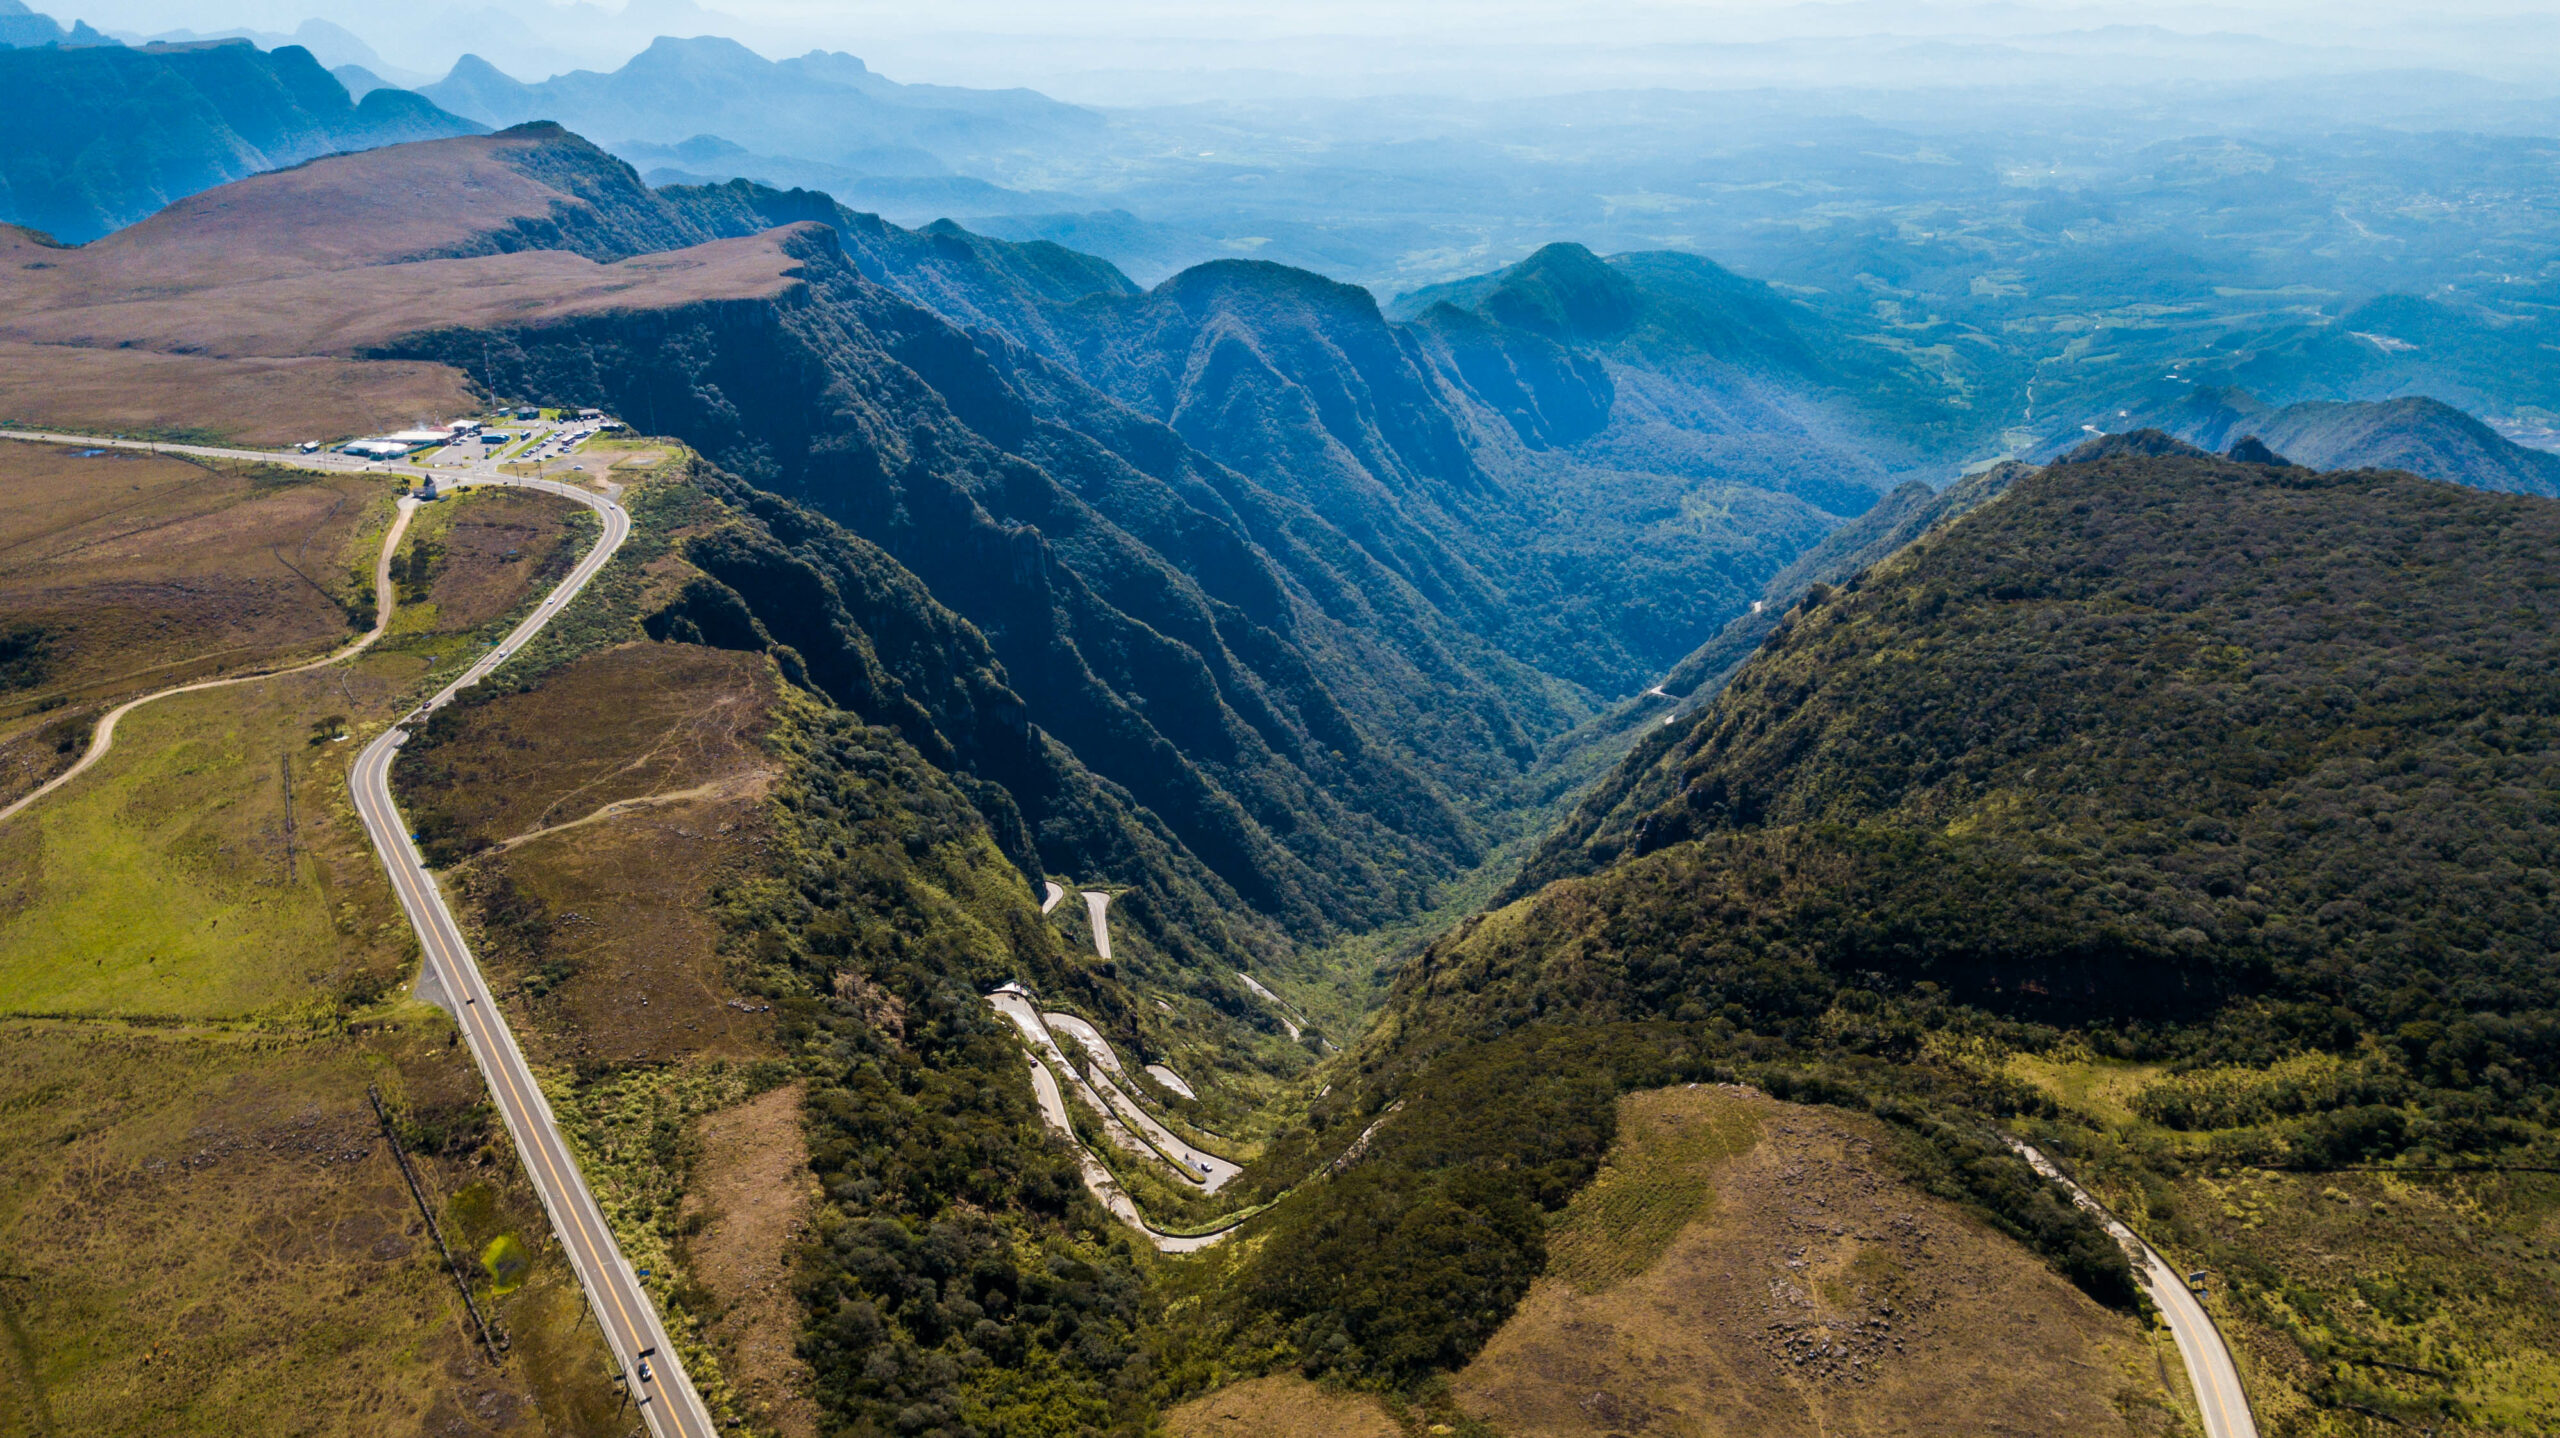 Aerial view of Serra do Rio do Rastro, in the Serra Catarinense. (Route Sierra of the trail river). Most beautiful and incredible road in Brazil